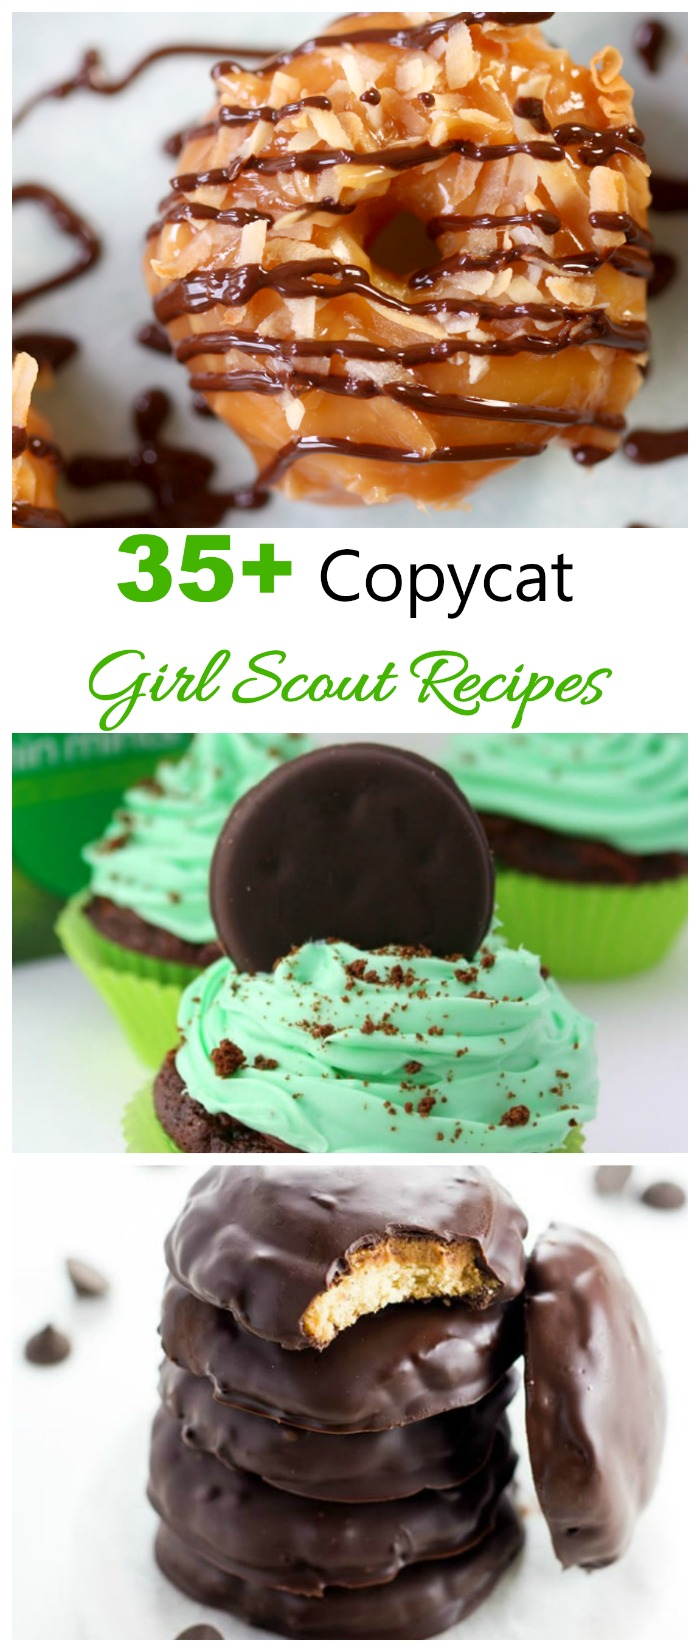 These copycat Girl Scout Recipes give you the flavors of your Favorite Girl Scout Cookie in a home made version.